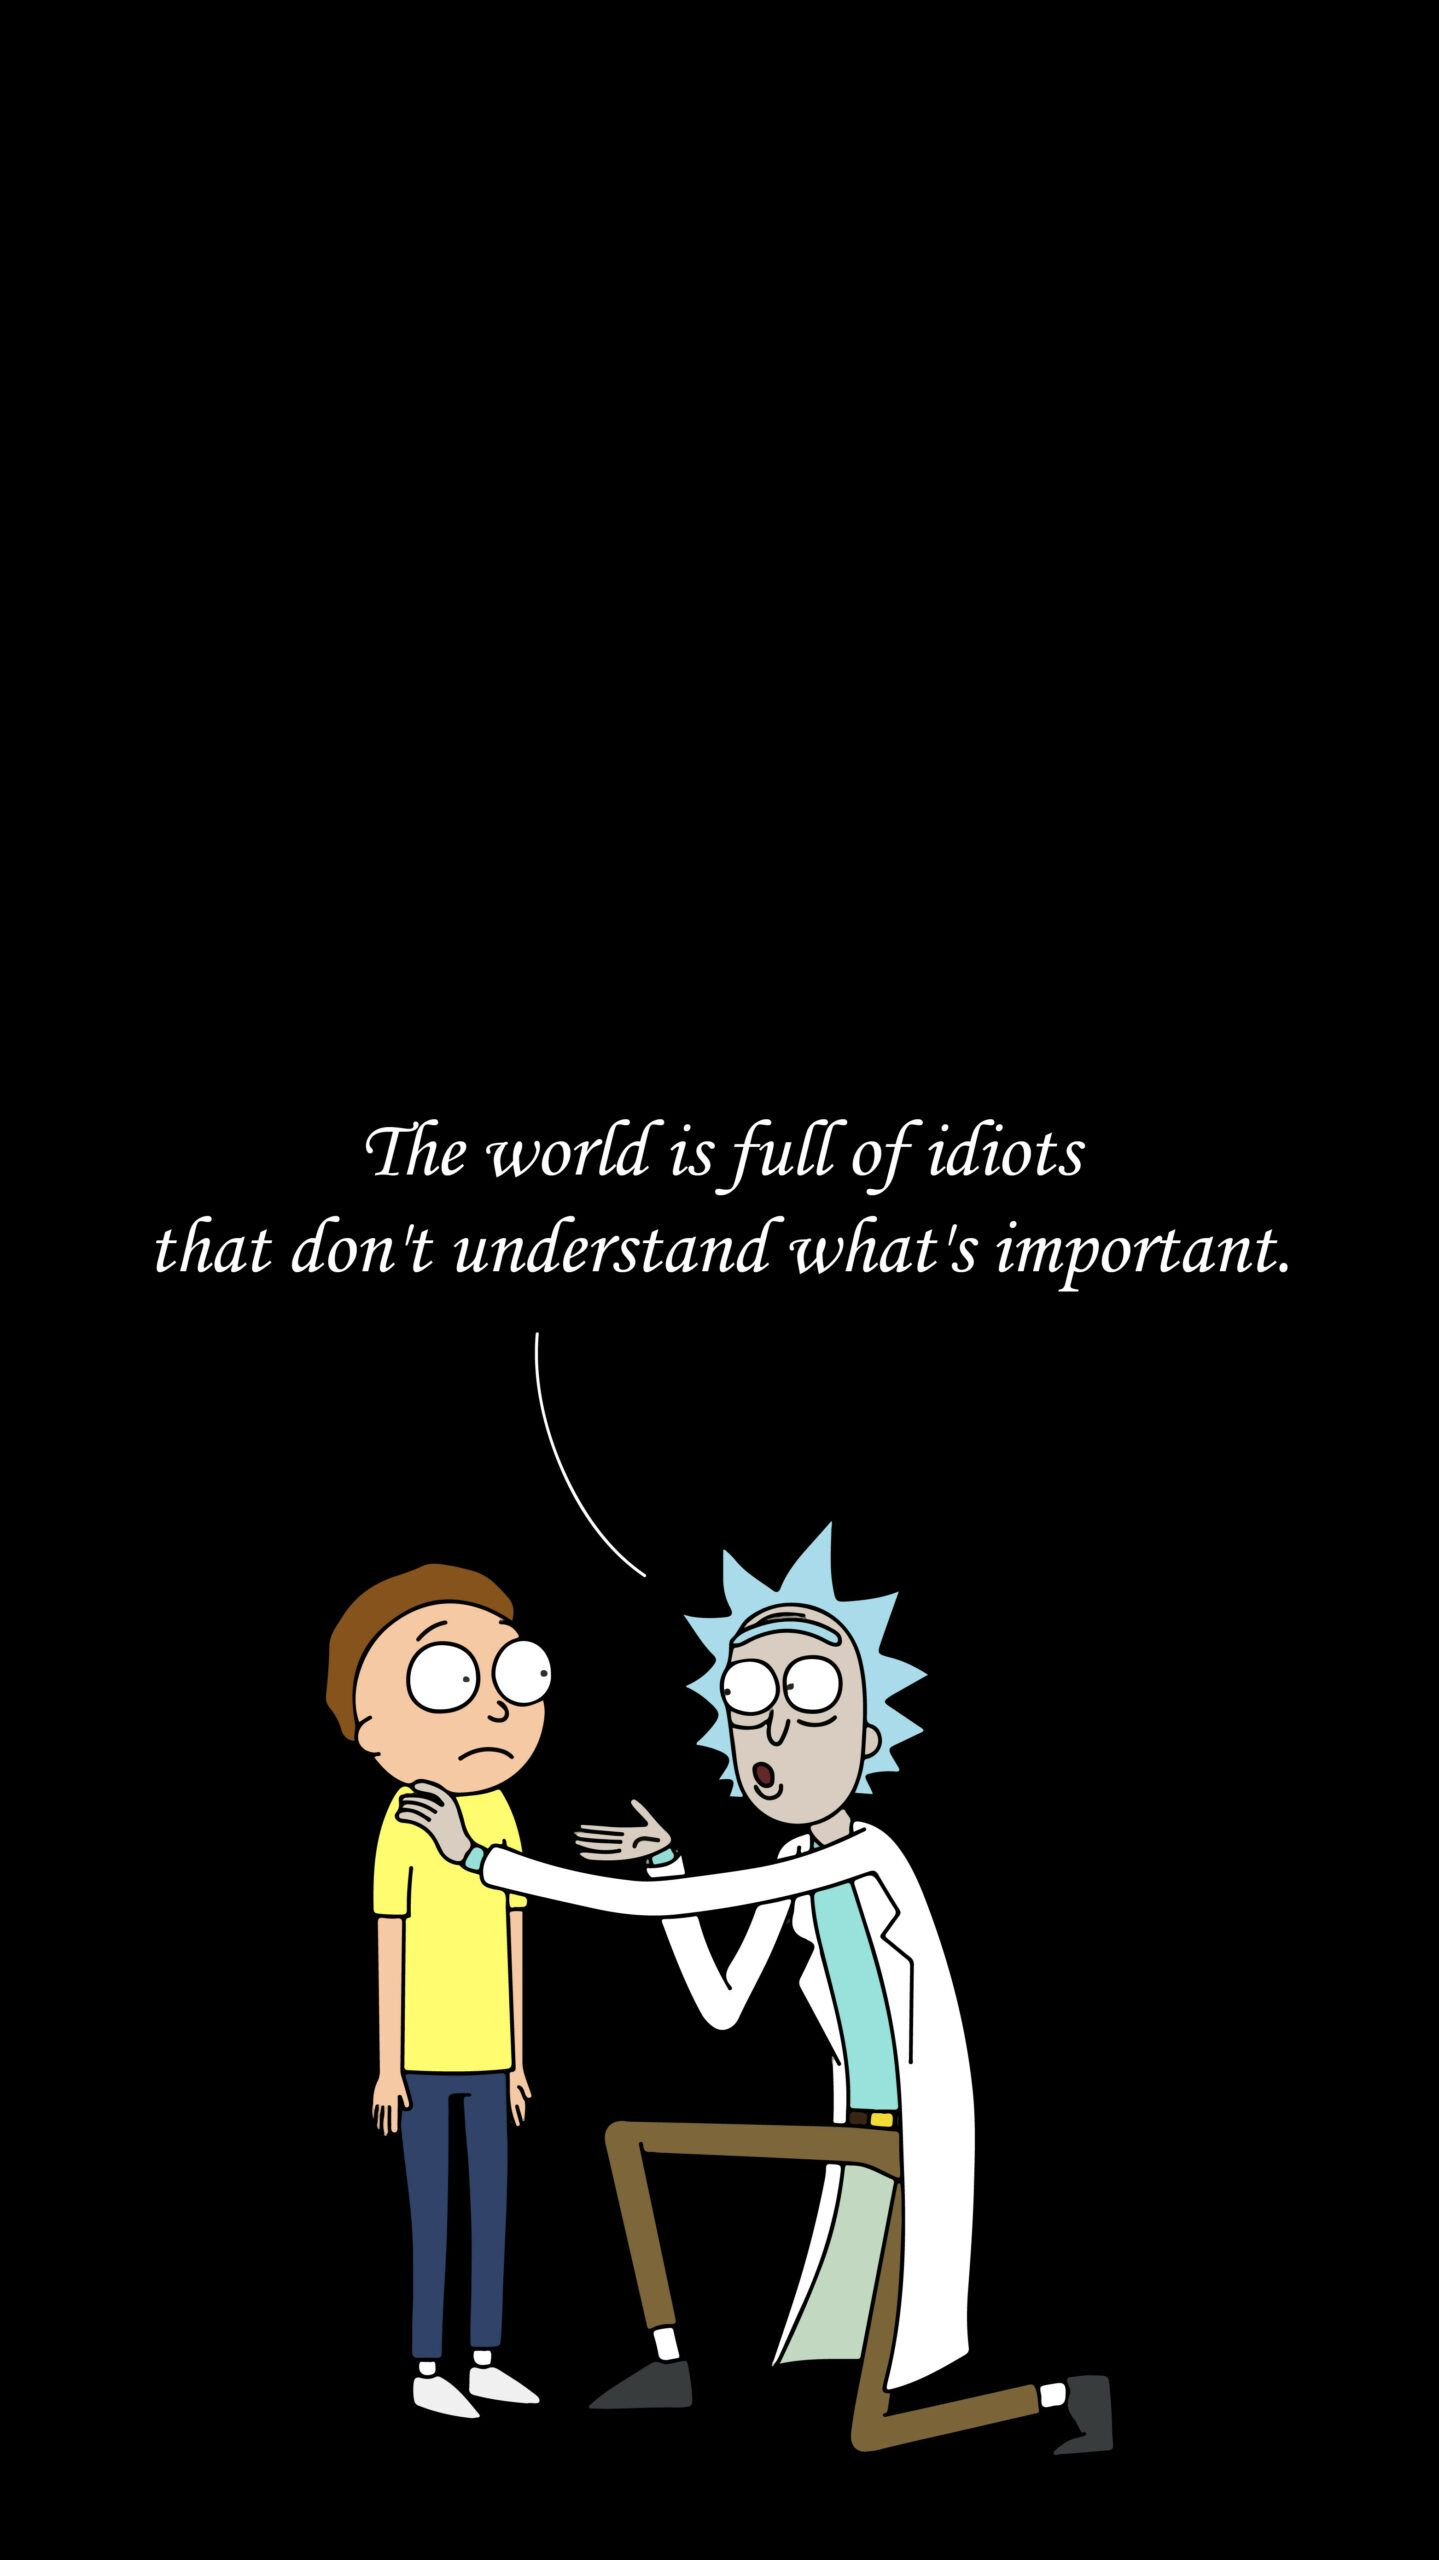 Rick And Morty Wallpaper Uniqu Quote Full Of Idiots In 2020 Rick And Morty Quotes Rick I Morty